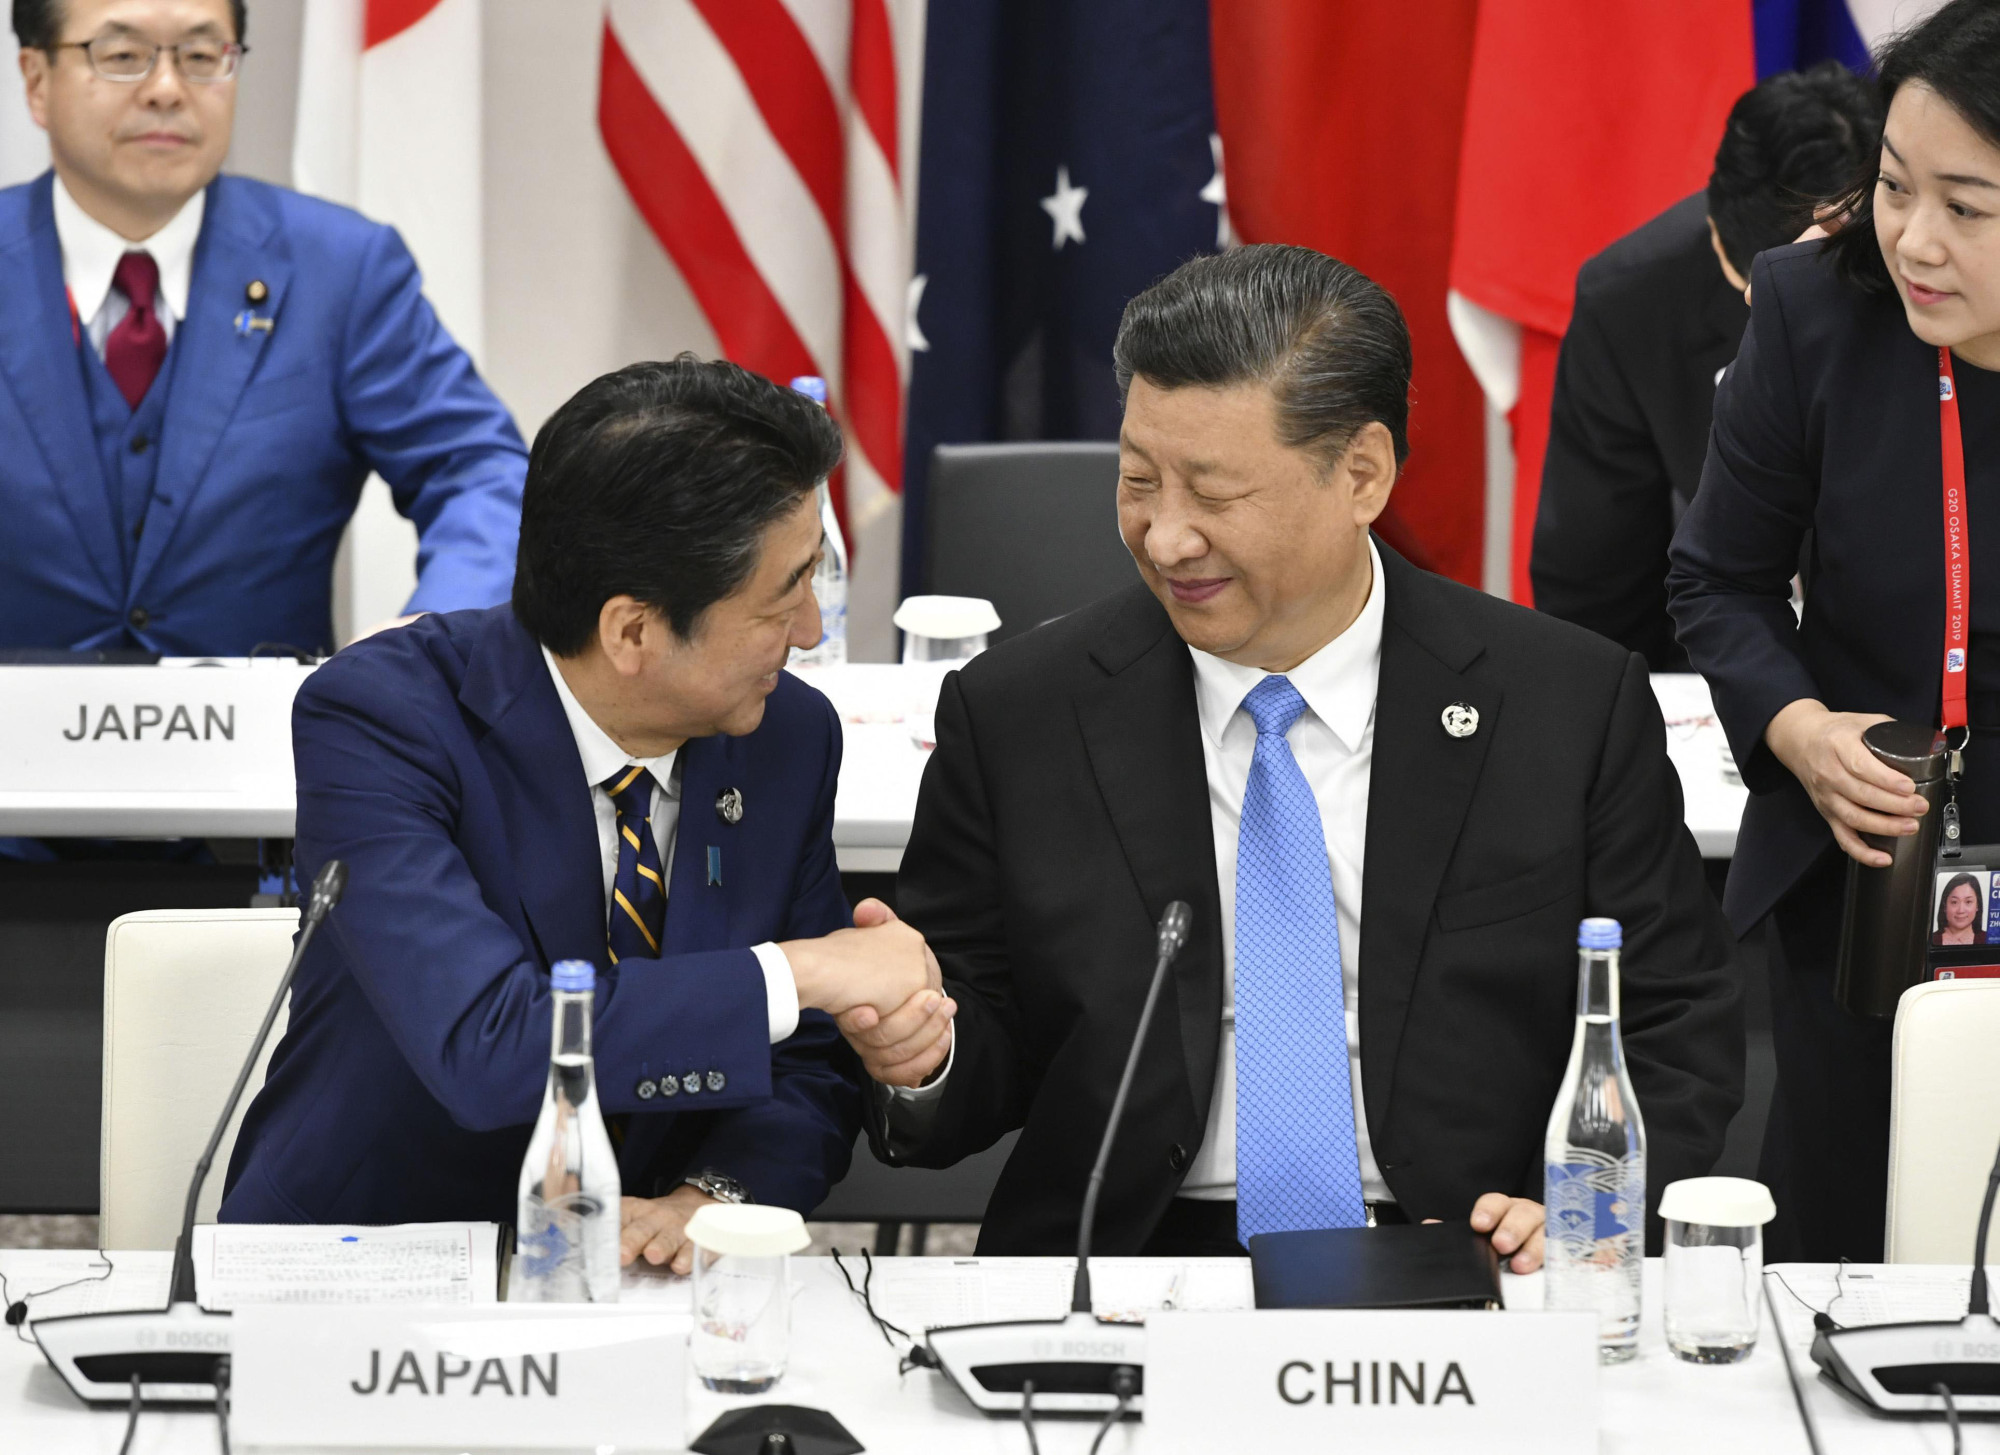 Prime Minister Shinzo Abe and Chinese leader Xi Jinping shake hands during the Group of 20 summit in Osaka on June 28. | KYODO